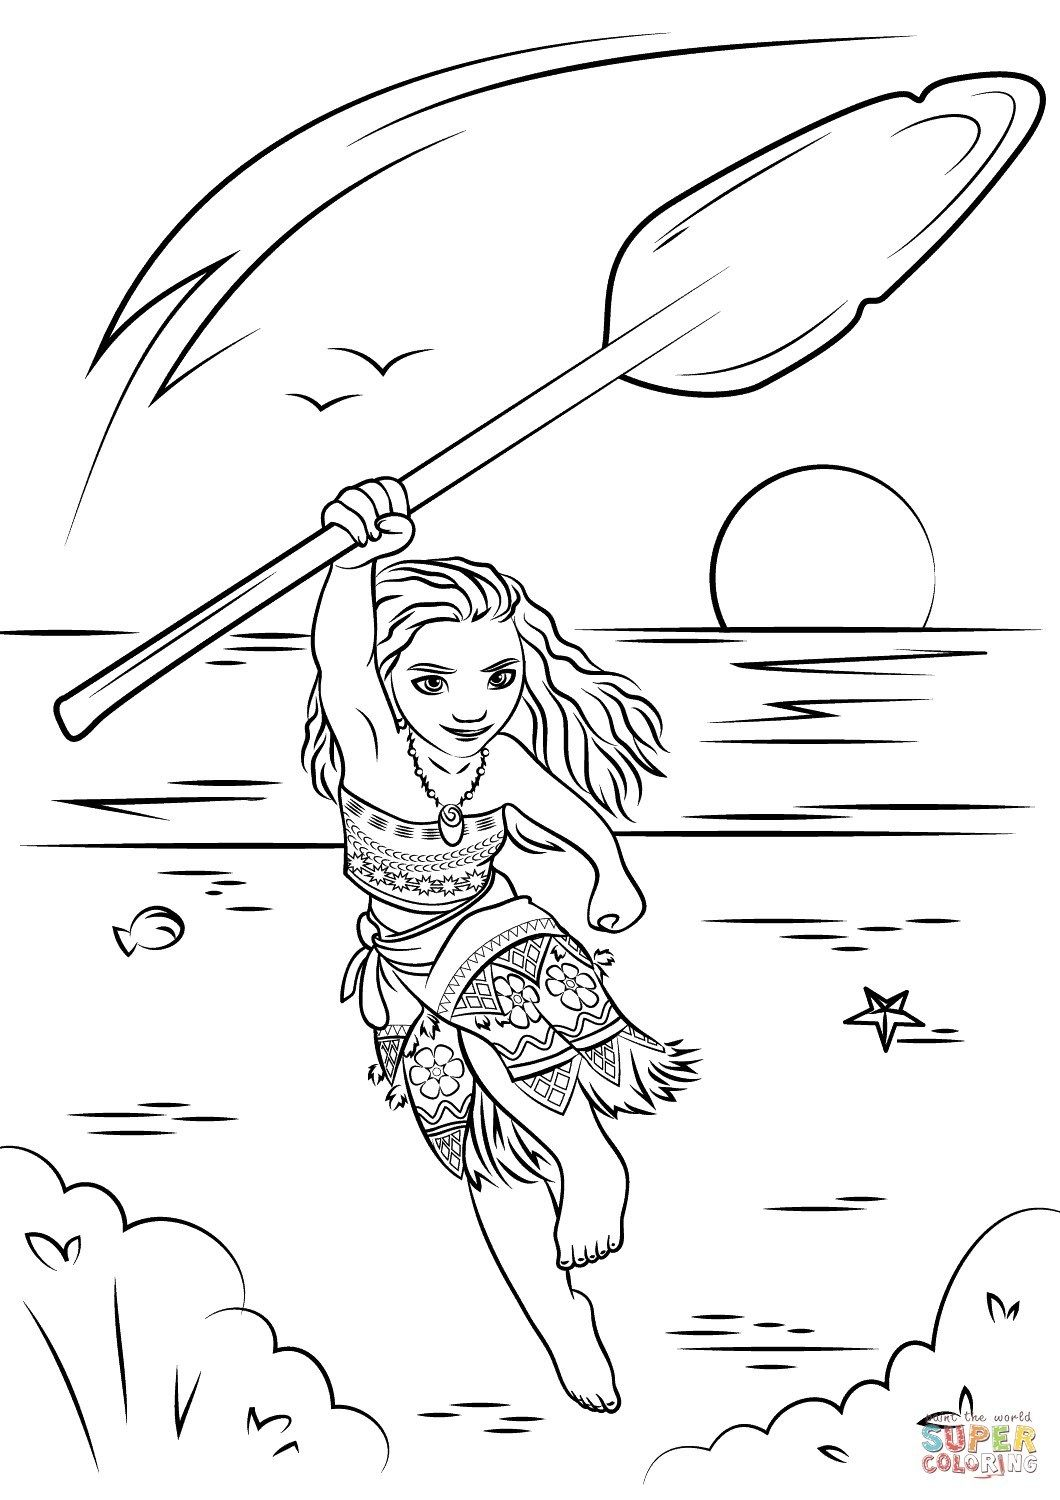 Pretty Picture Of Moana Printable Coloring Pages Birijus Com Moana Coloring Pages Moana Coloring Disney Coloring Pages